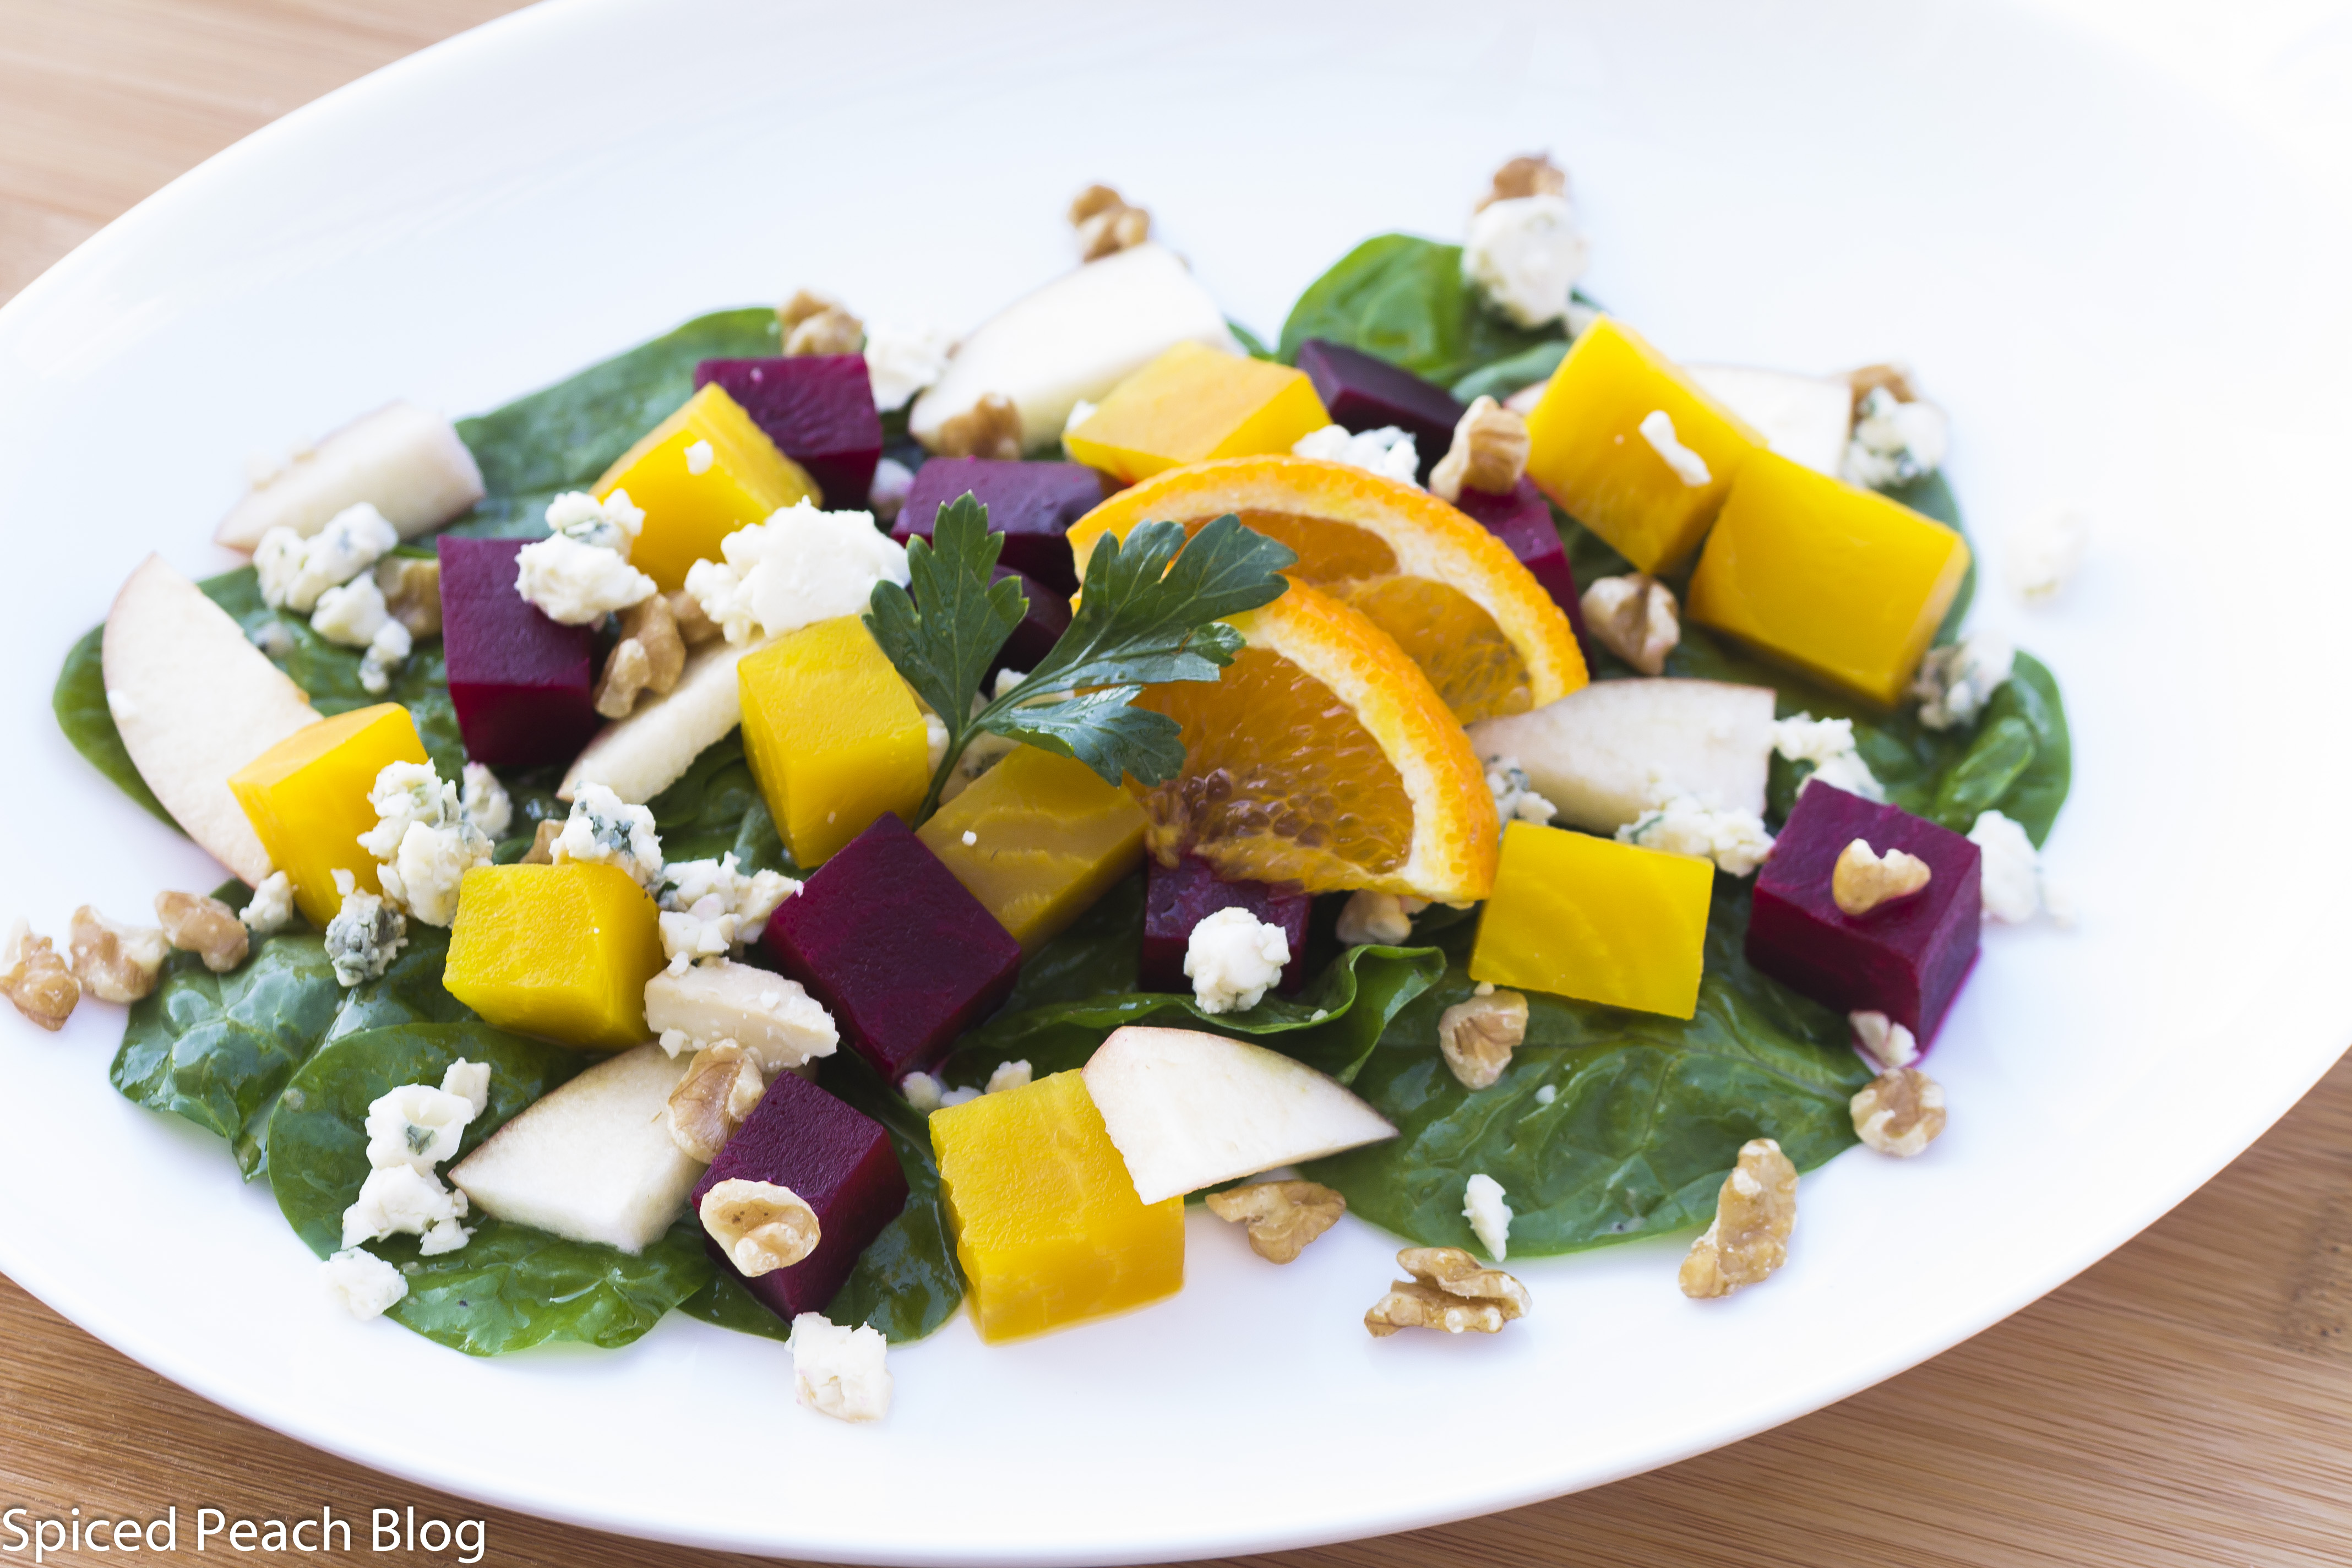 Yellow and Red Beets with Apple, Walnuts and Blue Cheese